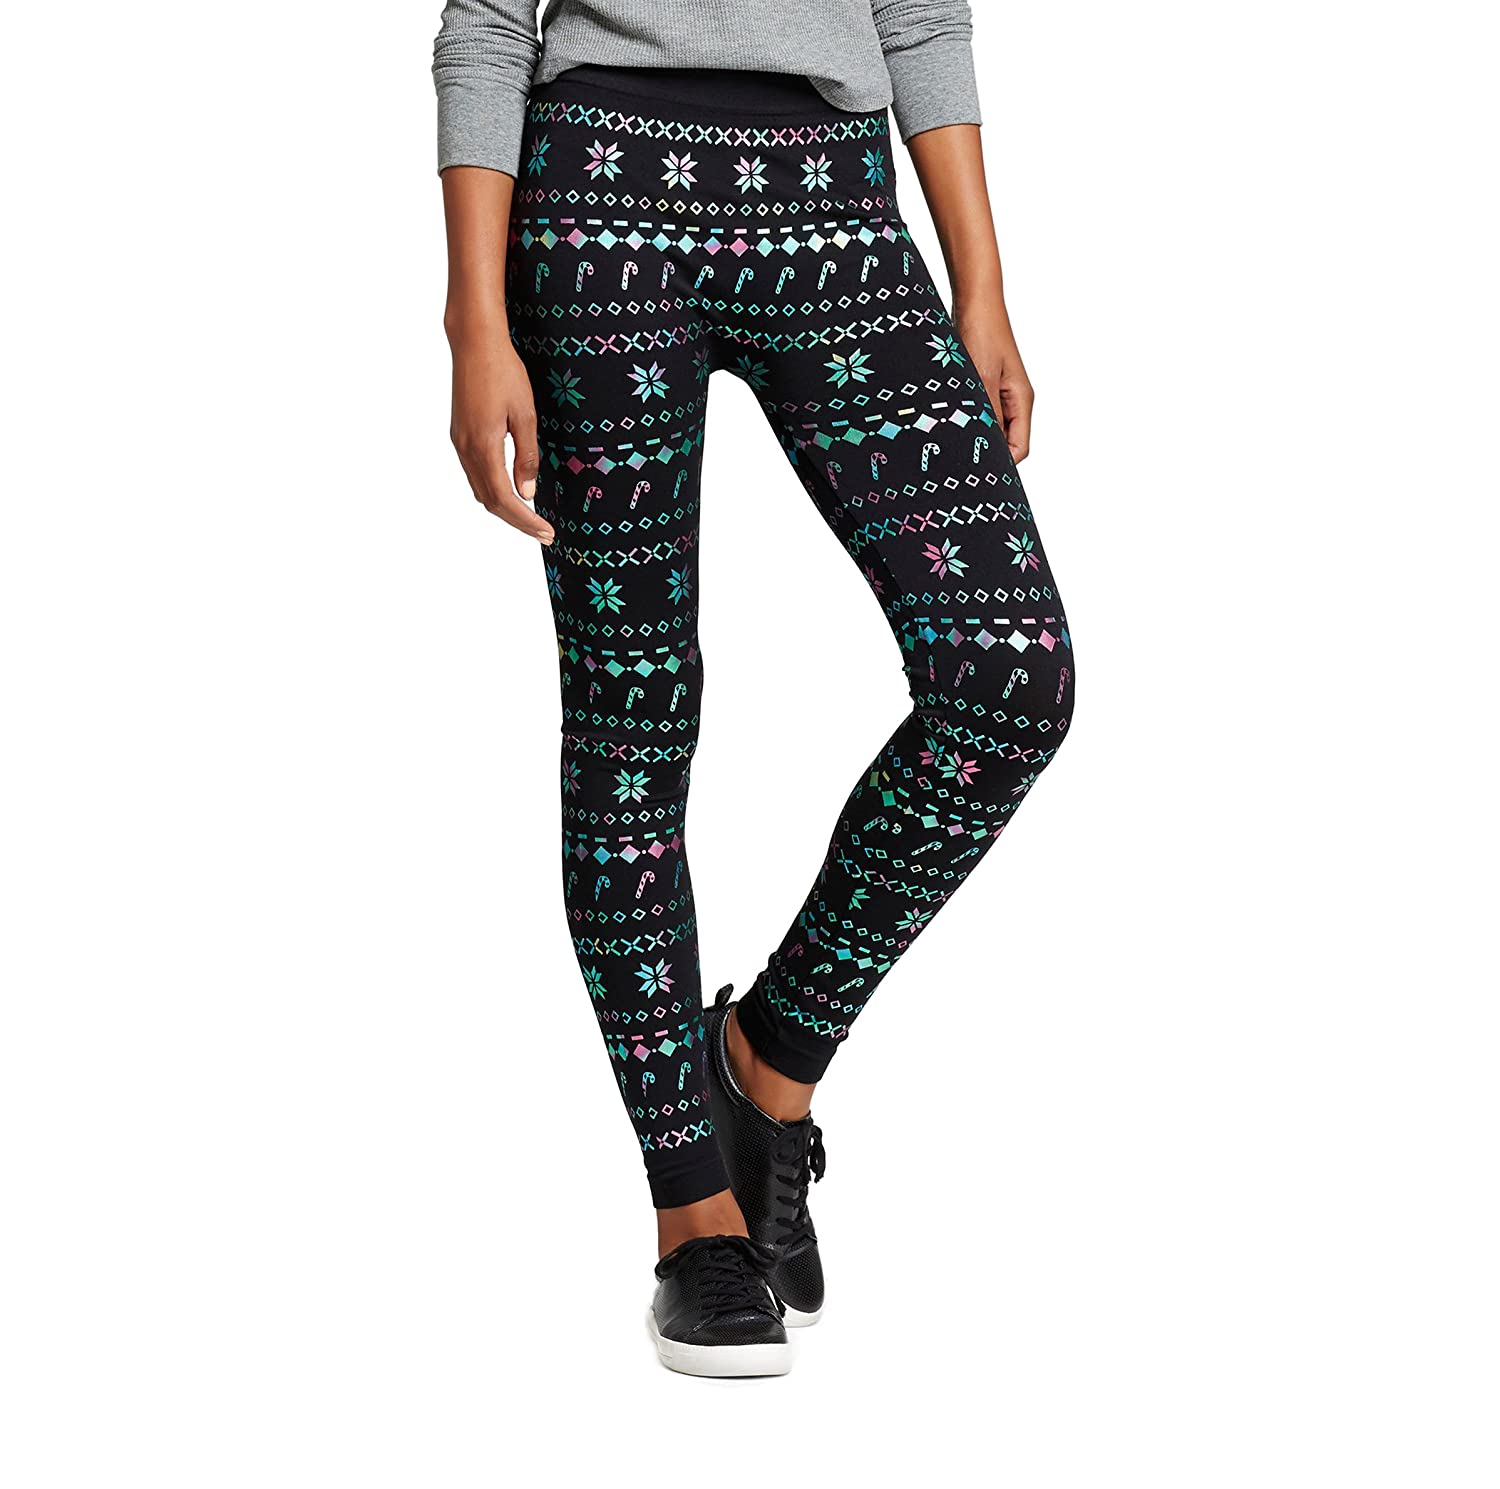 Xhilaration Women's Seamless Leggings Holiday Fair Isle Black